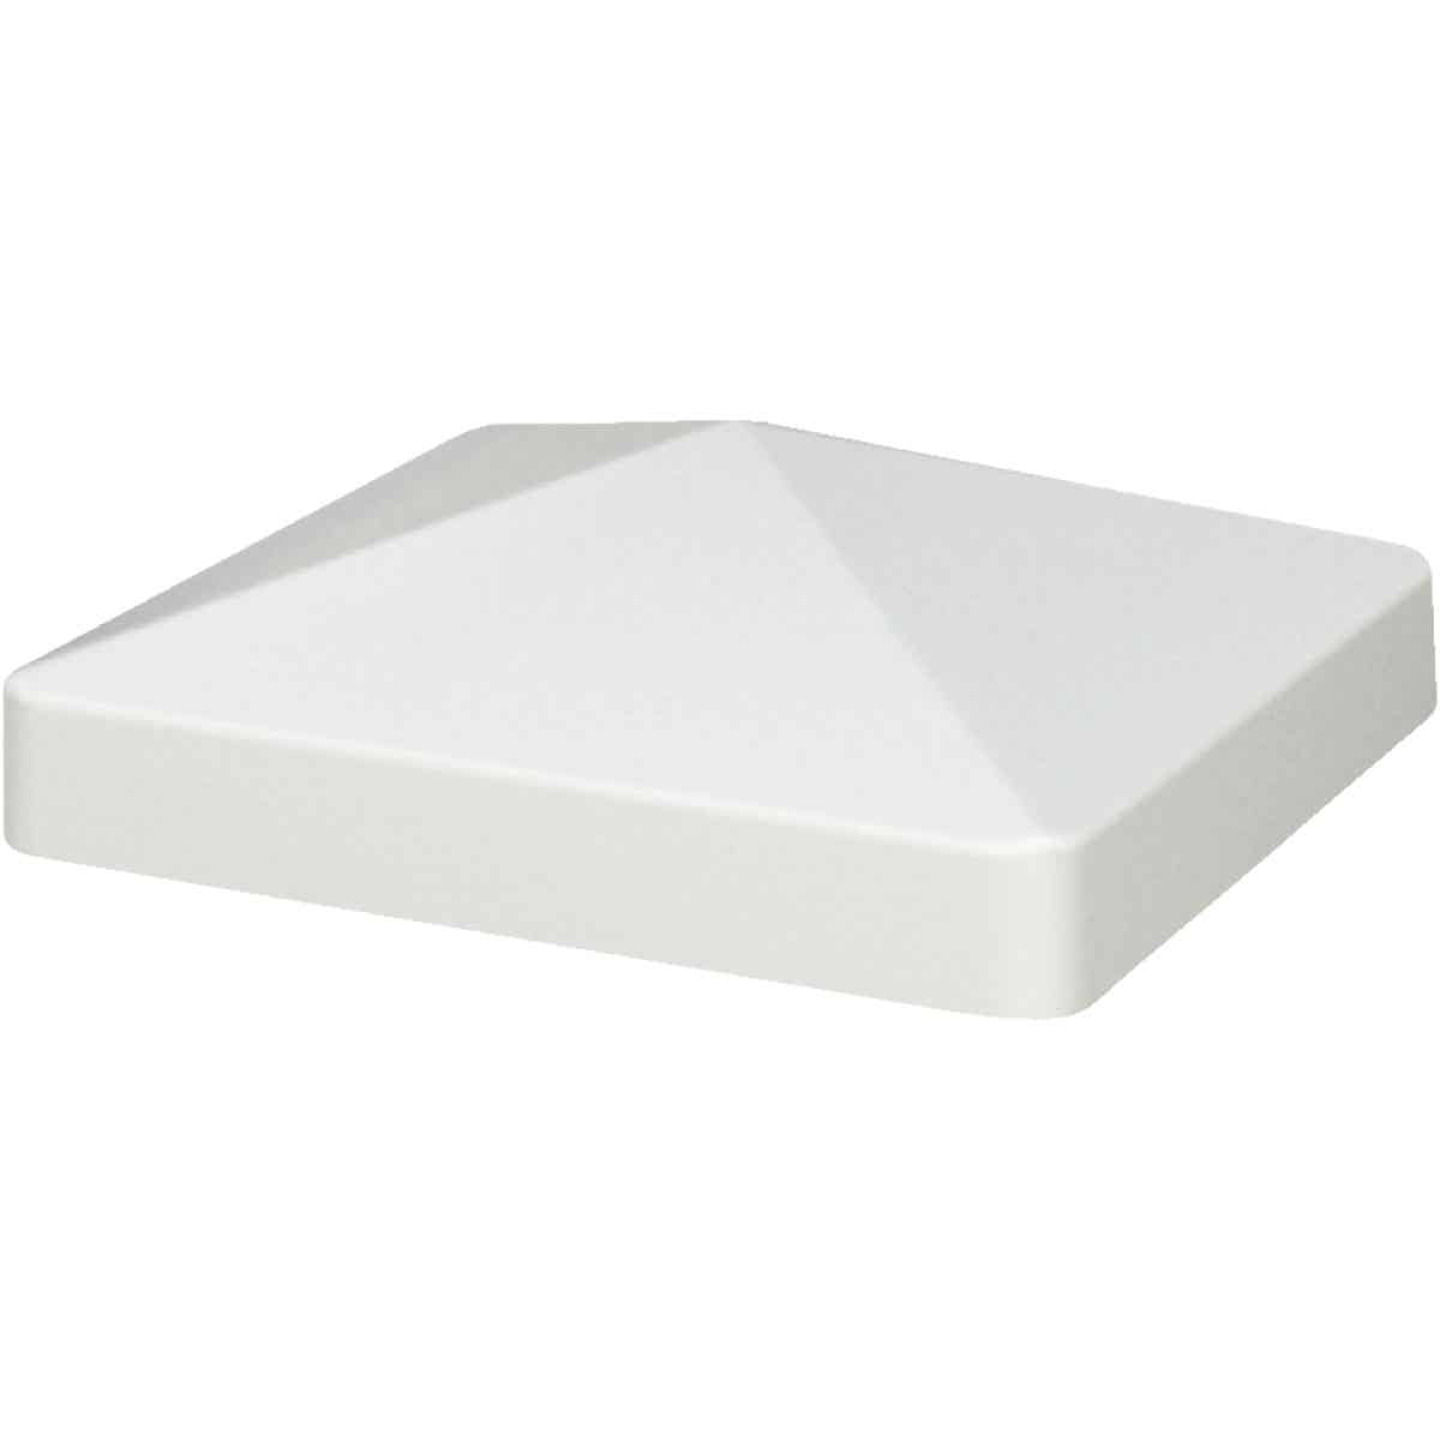 Outdoor Essentials 4 In. x 4 In. White Pyramid Vinyl Post Cap Image 3